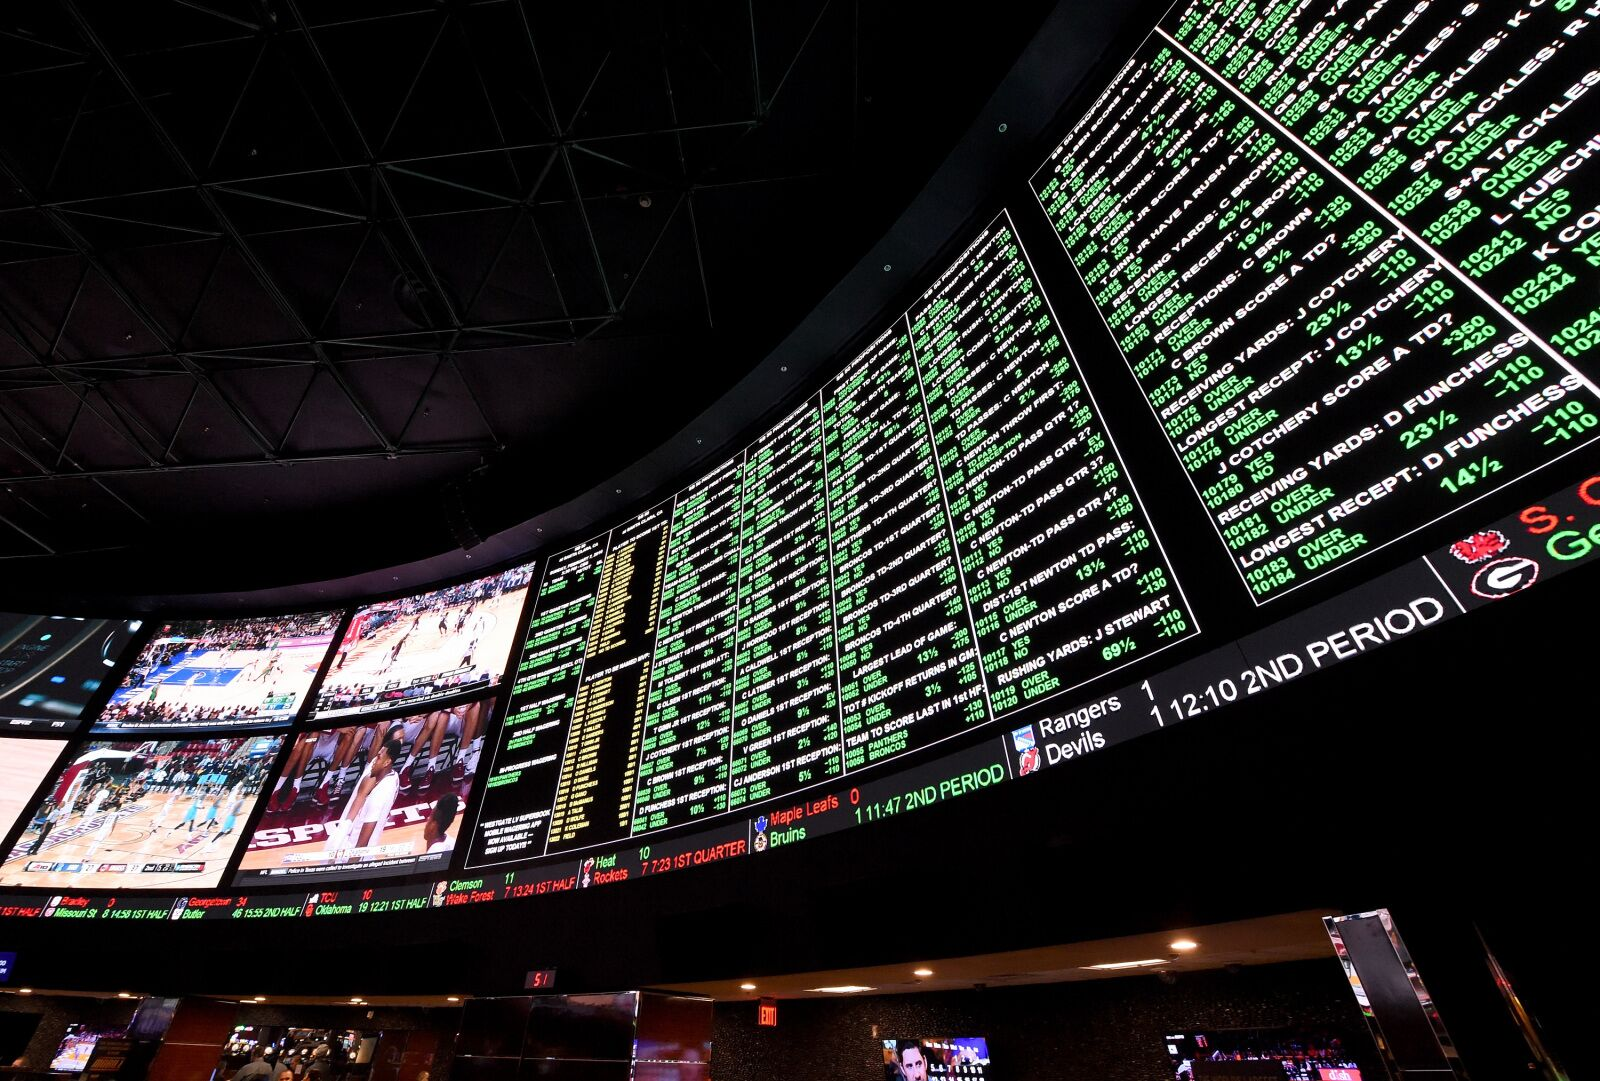 Over/Under odds for Tampa Bay Buccaneers set at 6.5 wins